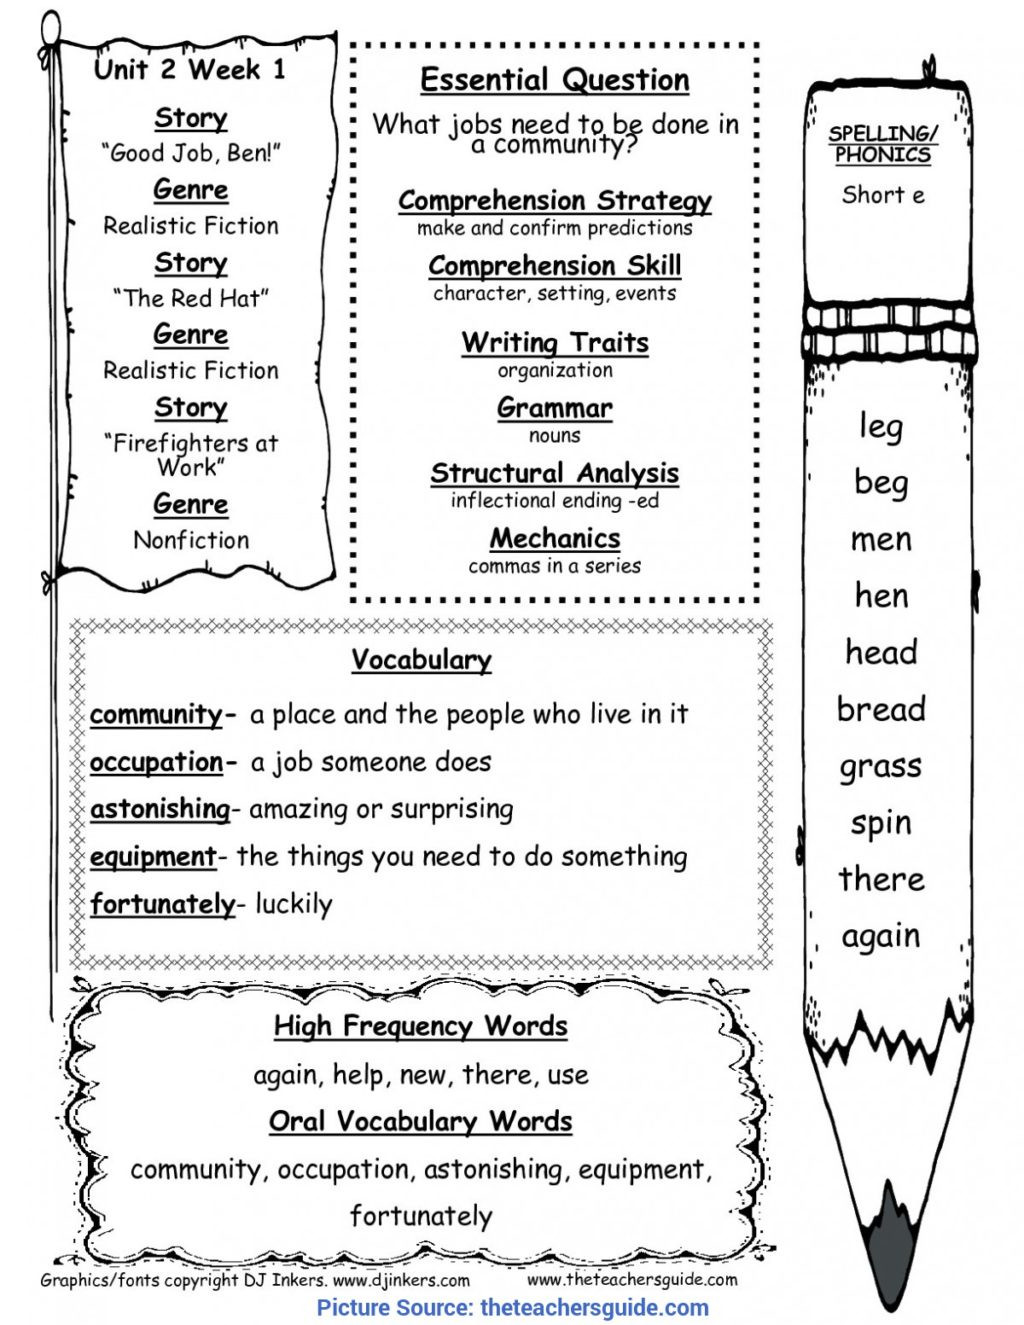 Prediction Worksheets 3rd Grade Worksheet Valuable 2nd Grade Science Lesson Plans Habitats